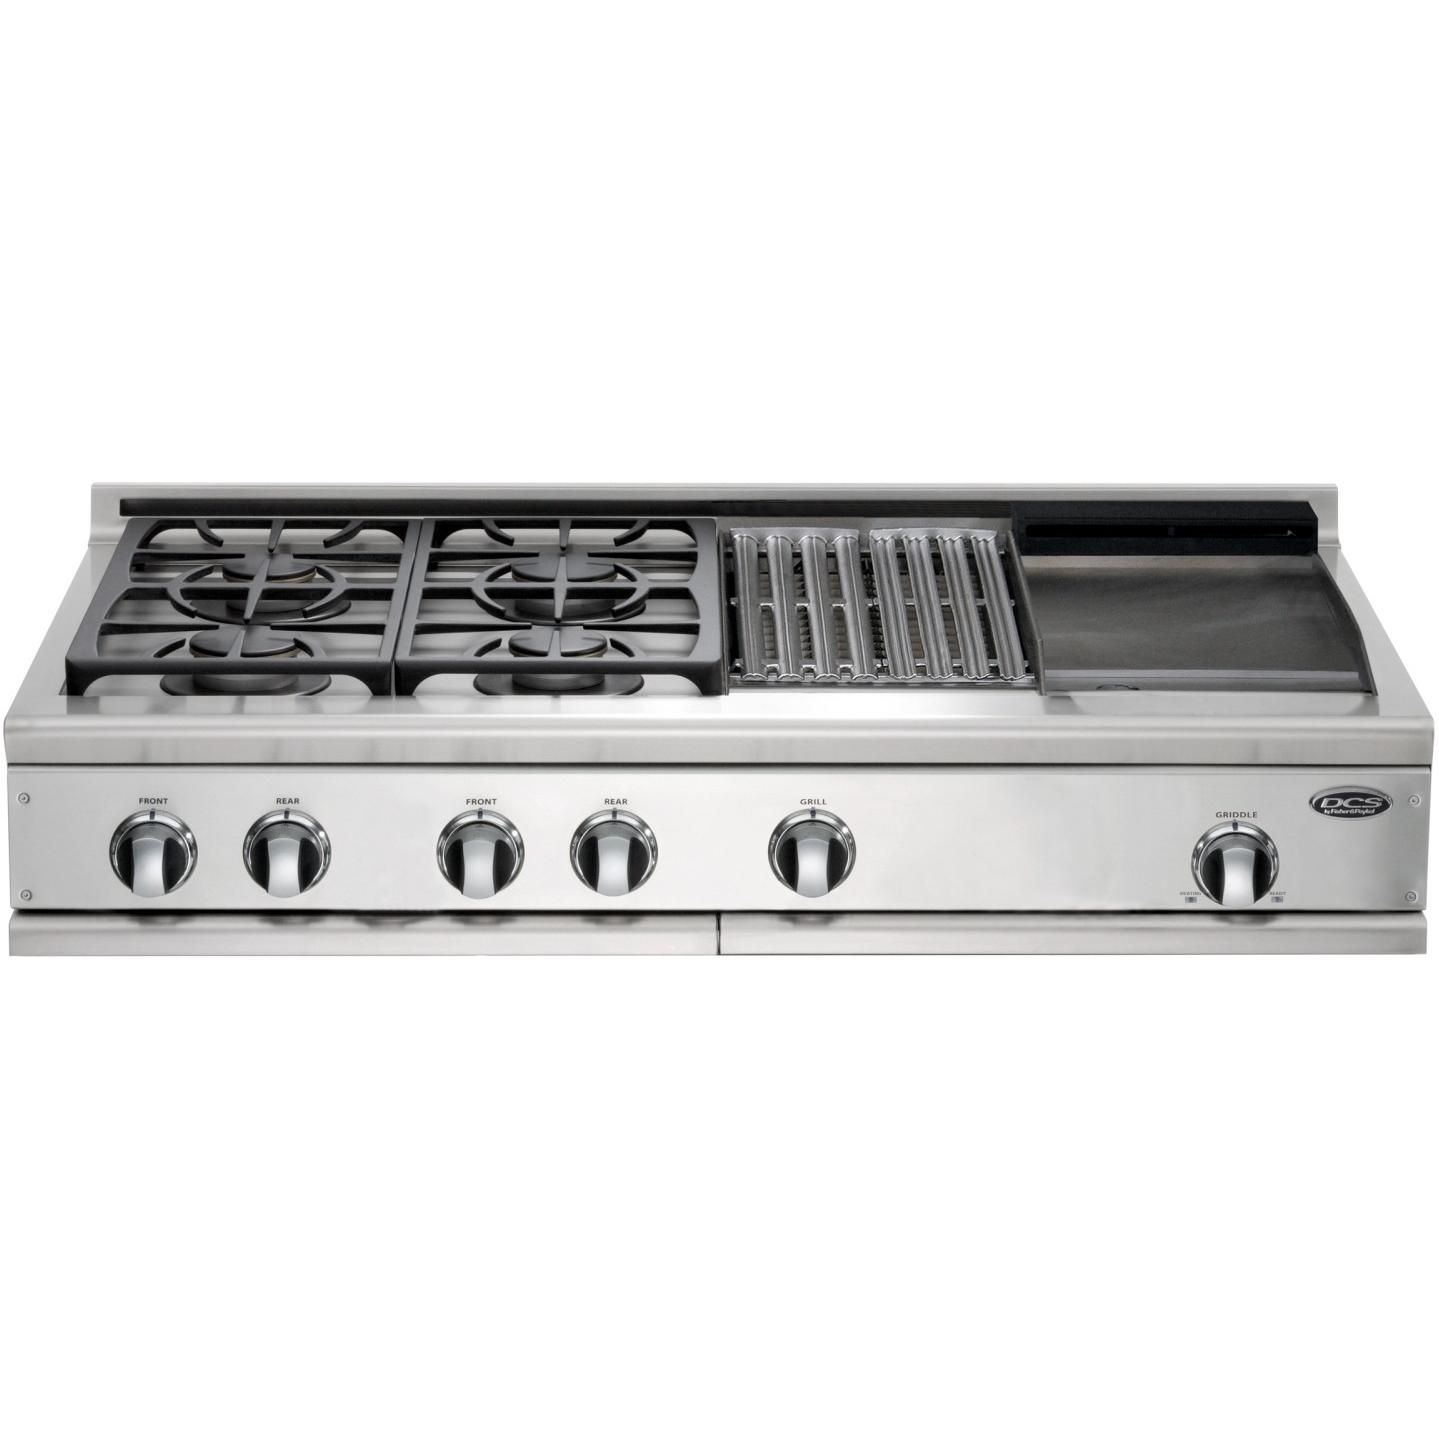 Dcs Cooktops 48 Inch Propane Gas Cooktop With Griddle Grill By Fisher Paykel Cp 484gg